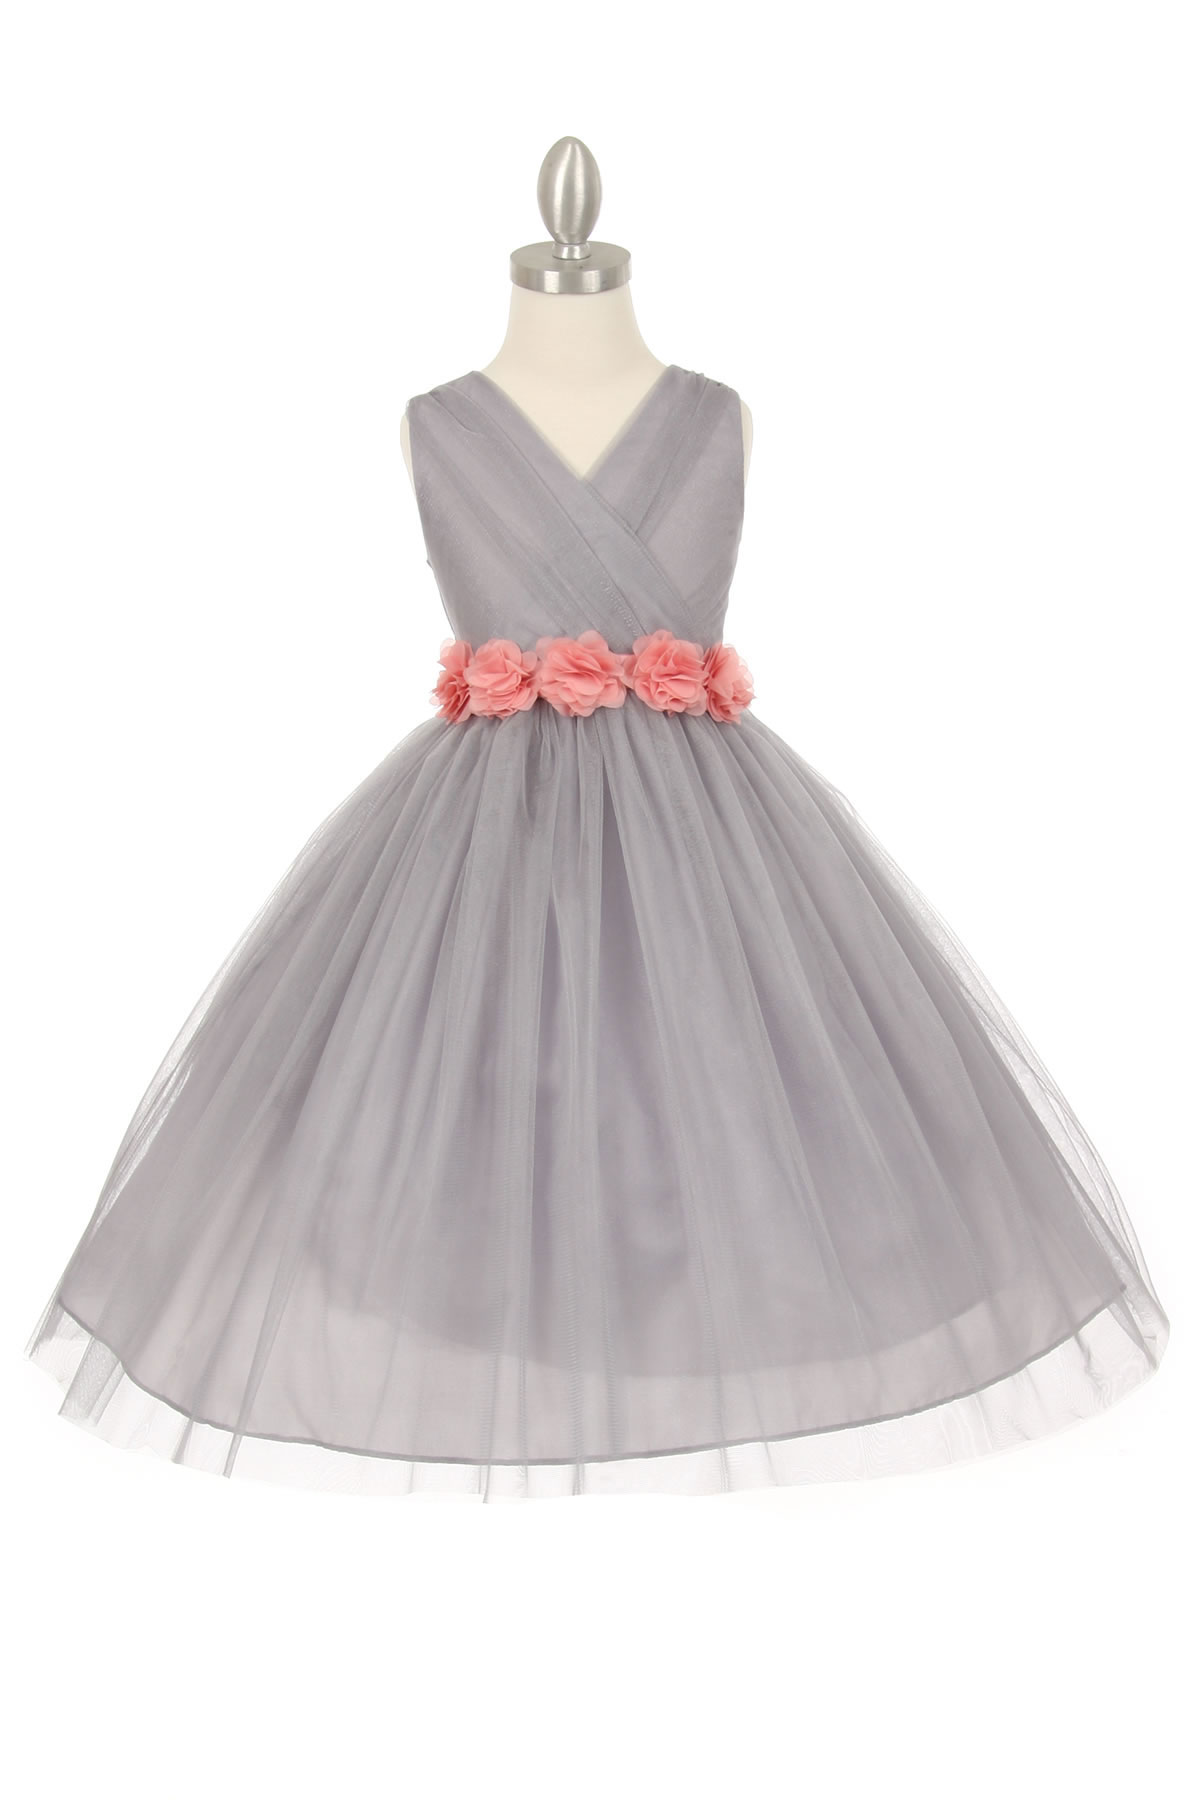 CC 1220SVDR Girls Dress Style 1220 SILVER Dress with